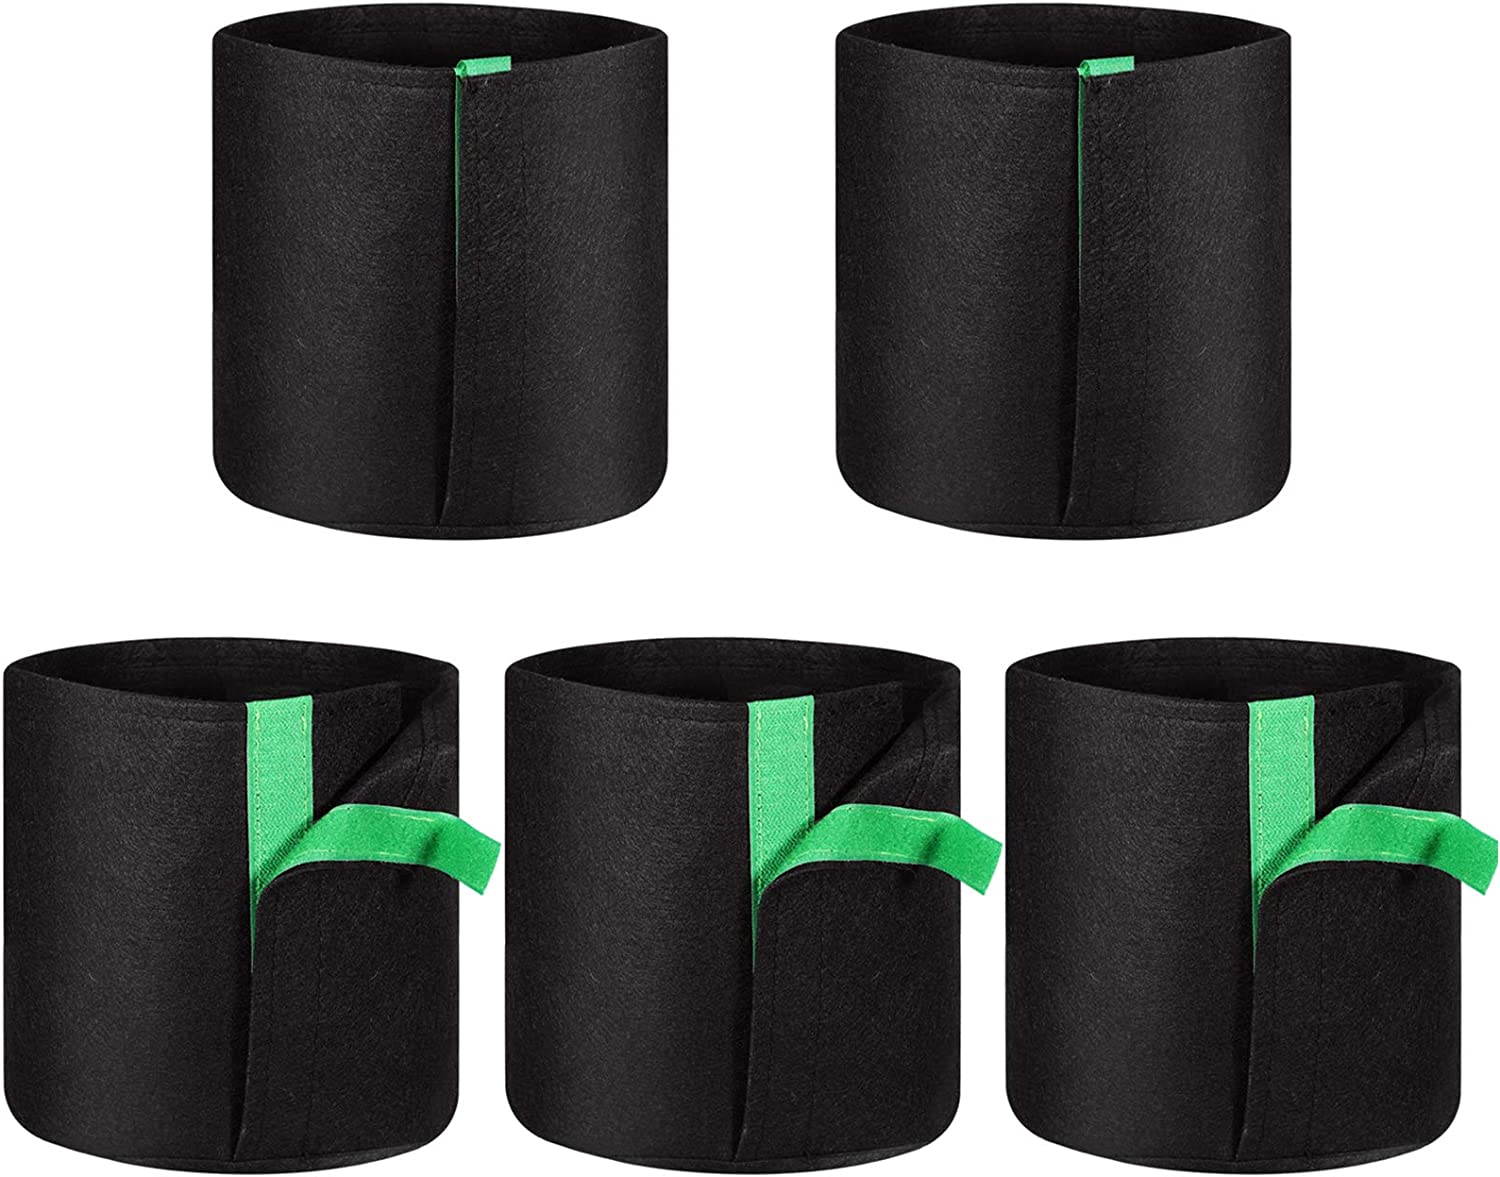 Two Sides Window Heavy Duty Thickened Aeration Nonwoven Fabric Pots with Handles Potato Planter Plant Grow Bags 3 Pack 5 Gallon